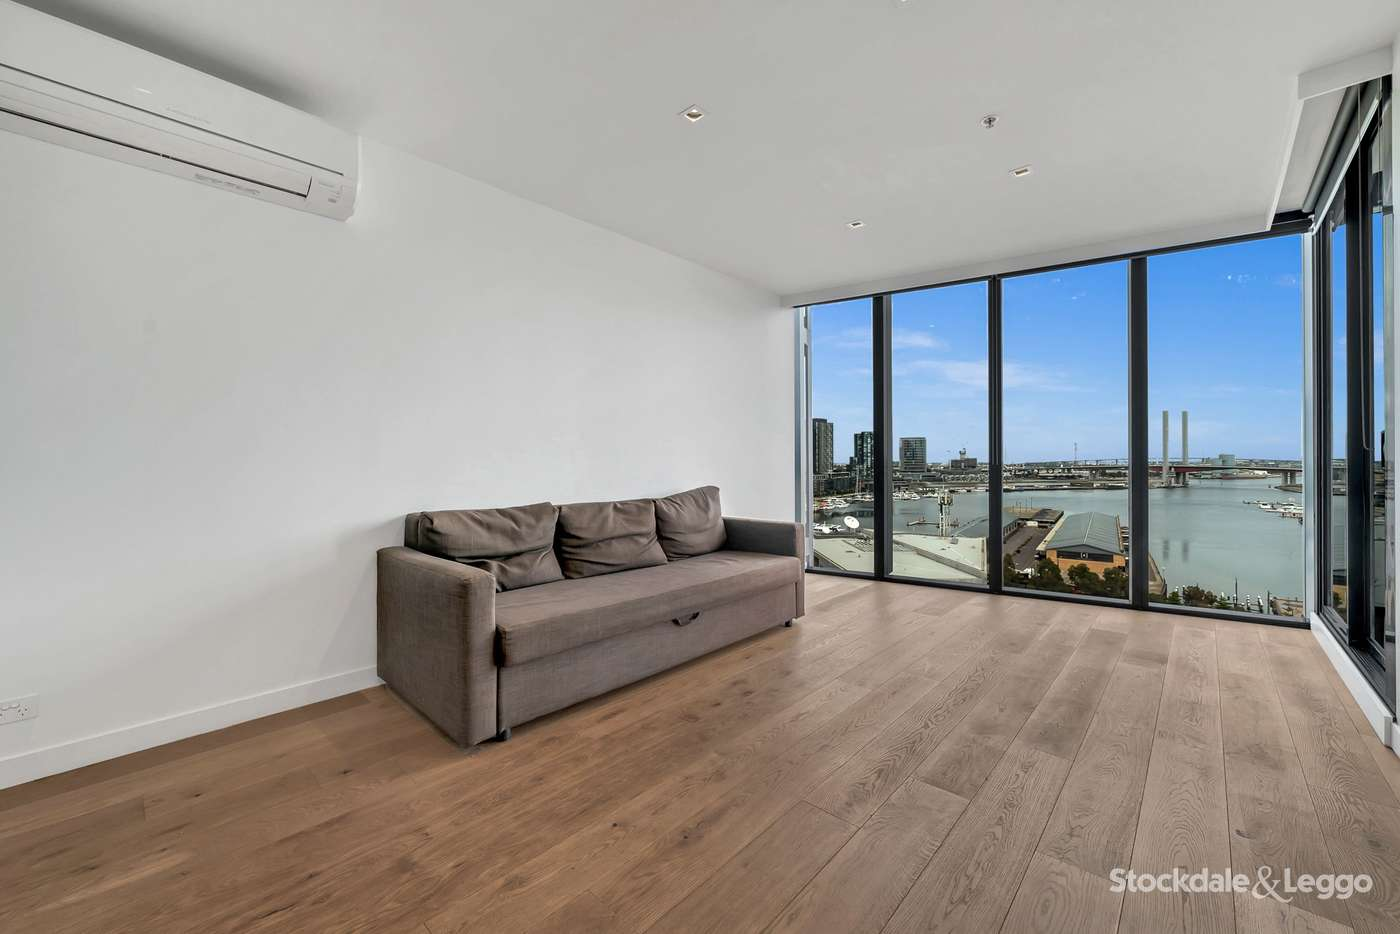 Fifth view of Homely apartment listing, 1211/677 La Trobe Street, Docklands VIC 3008